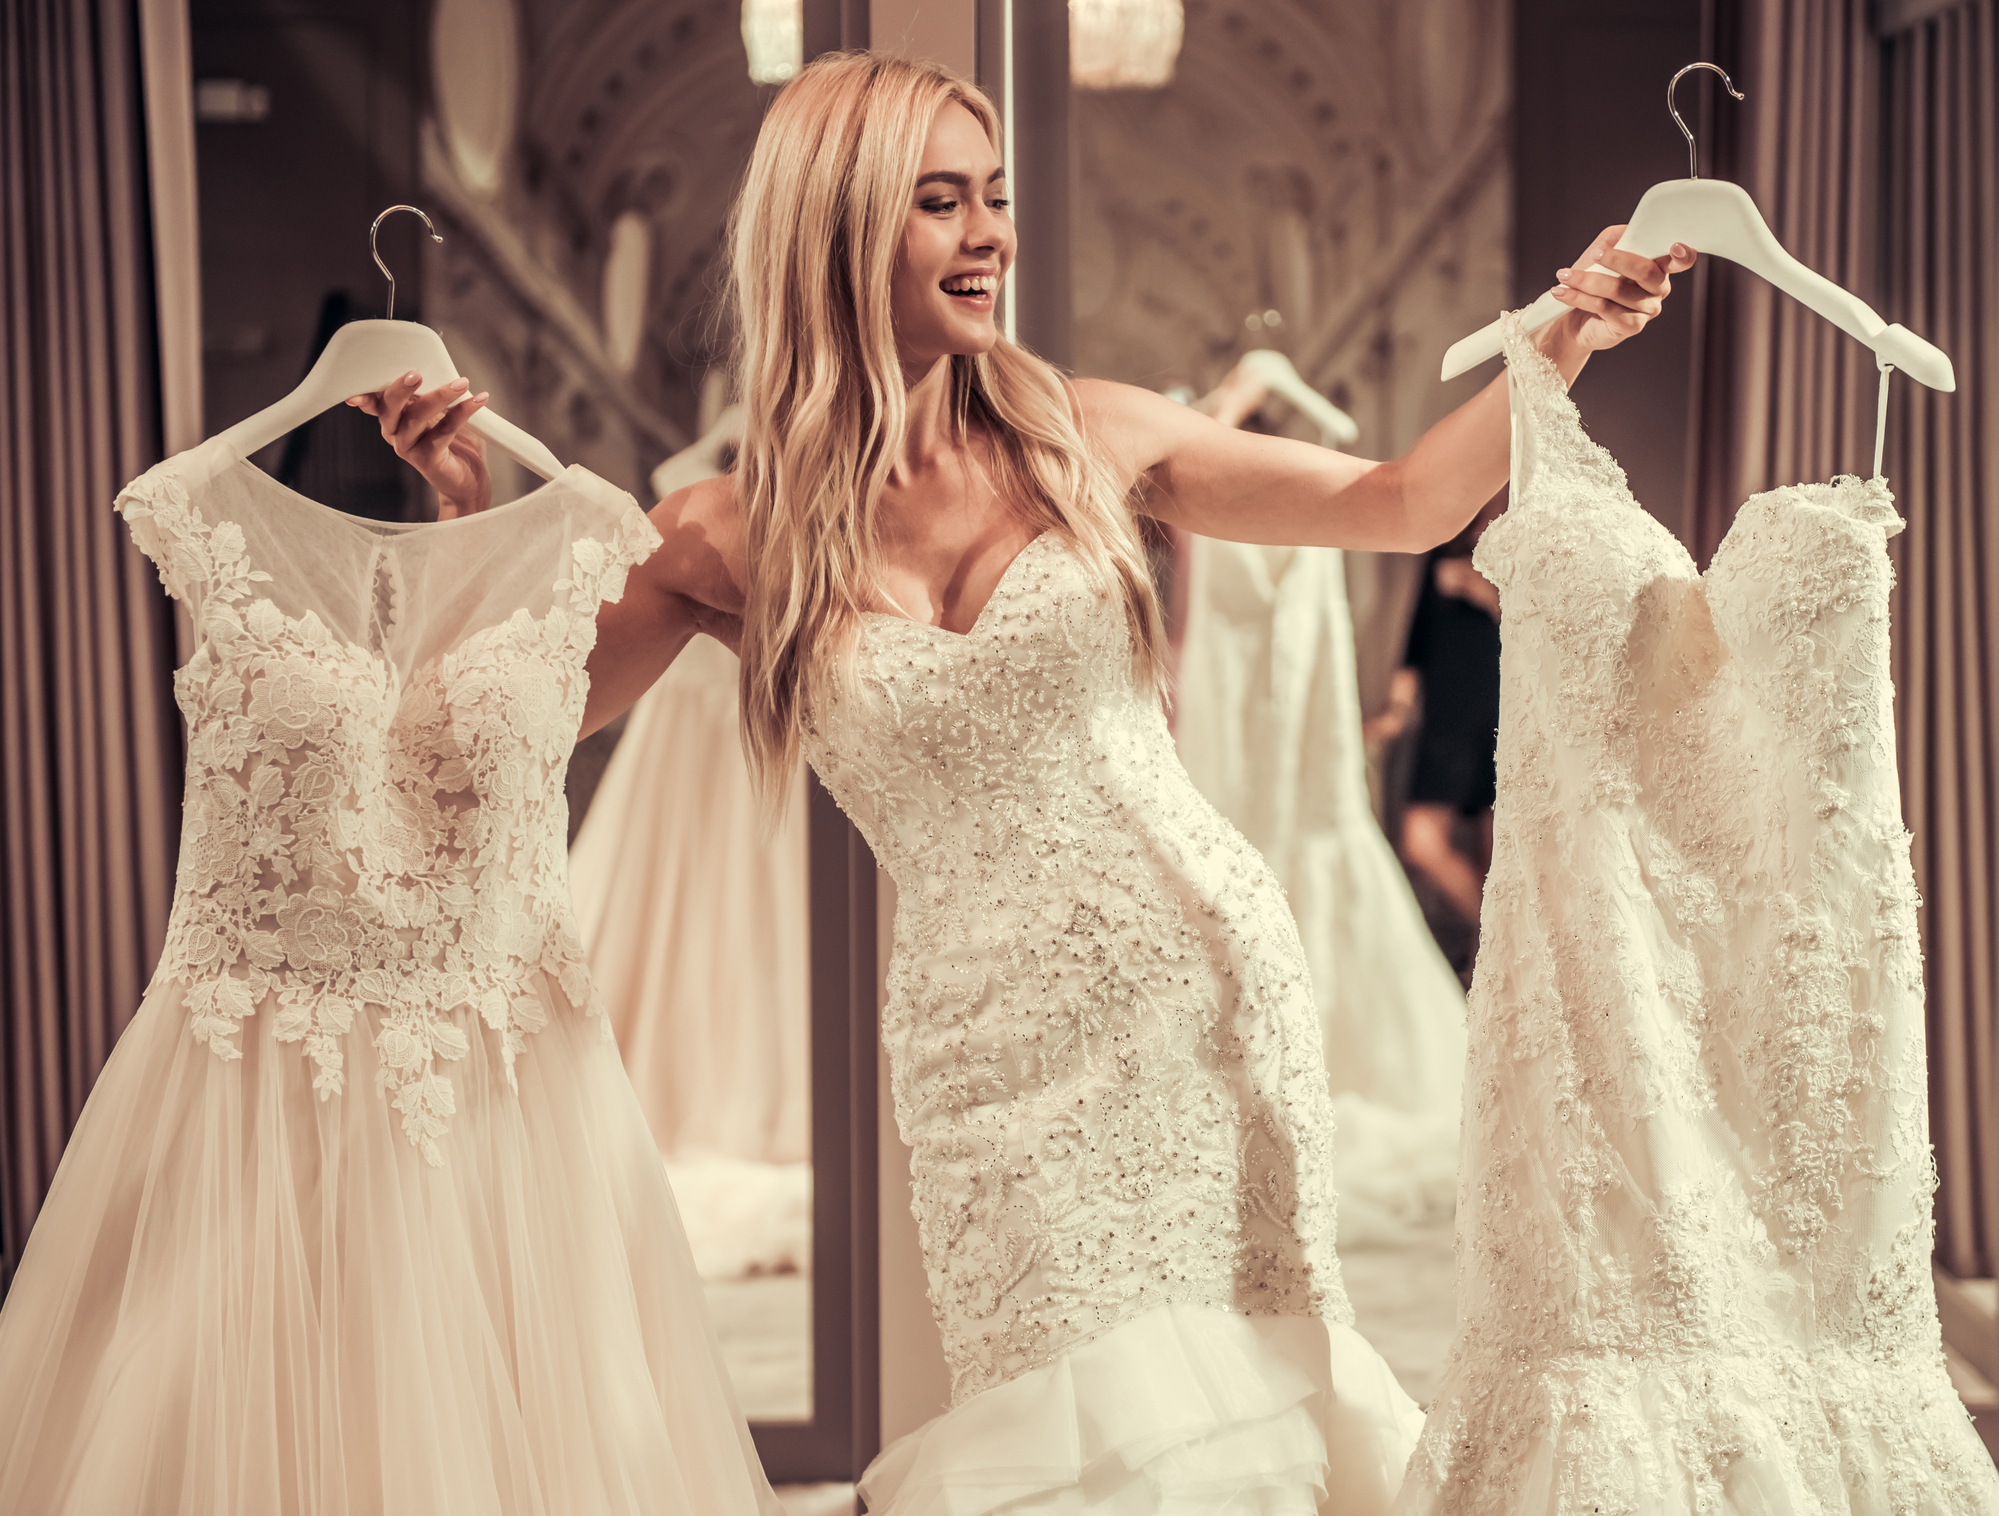 5 Things I Wish I knew Before Shopping for My Wedding Dress